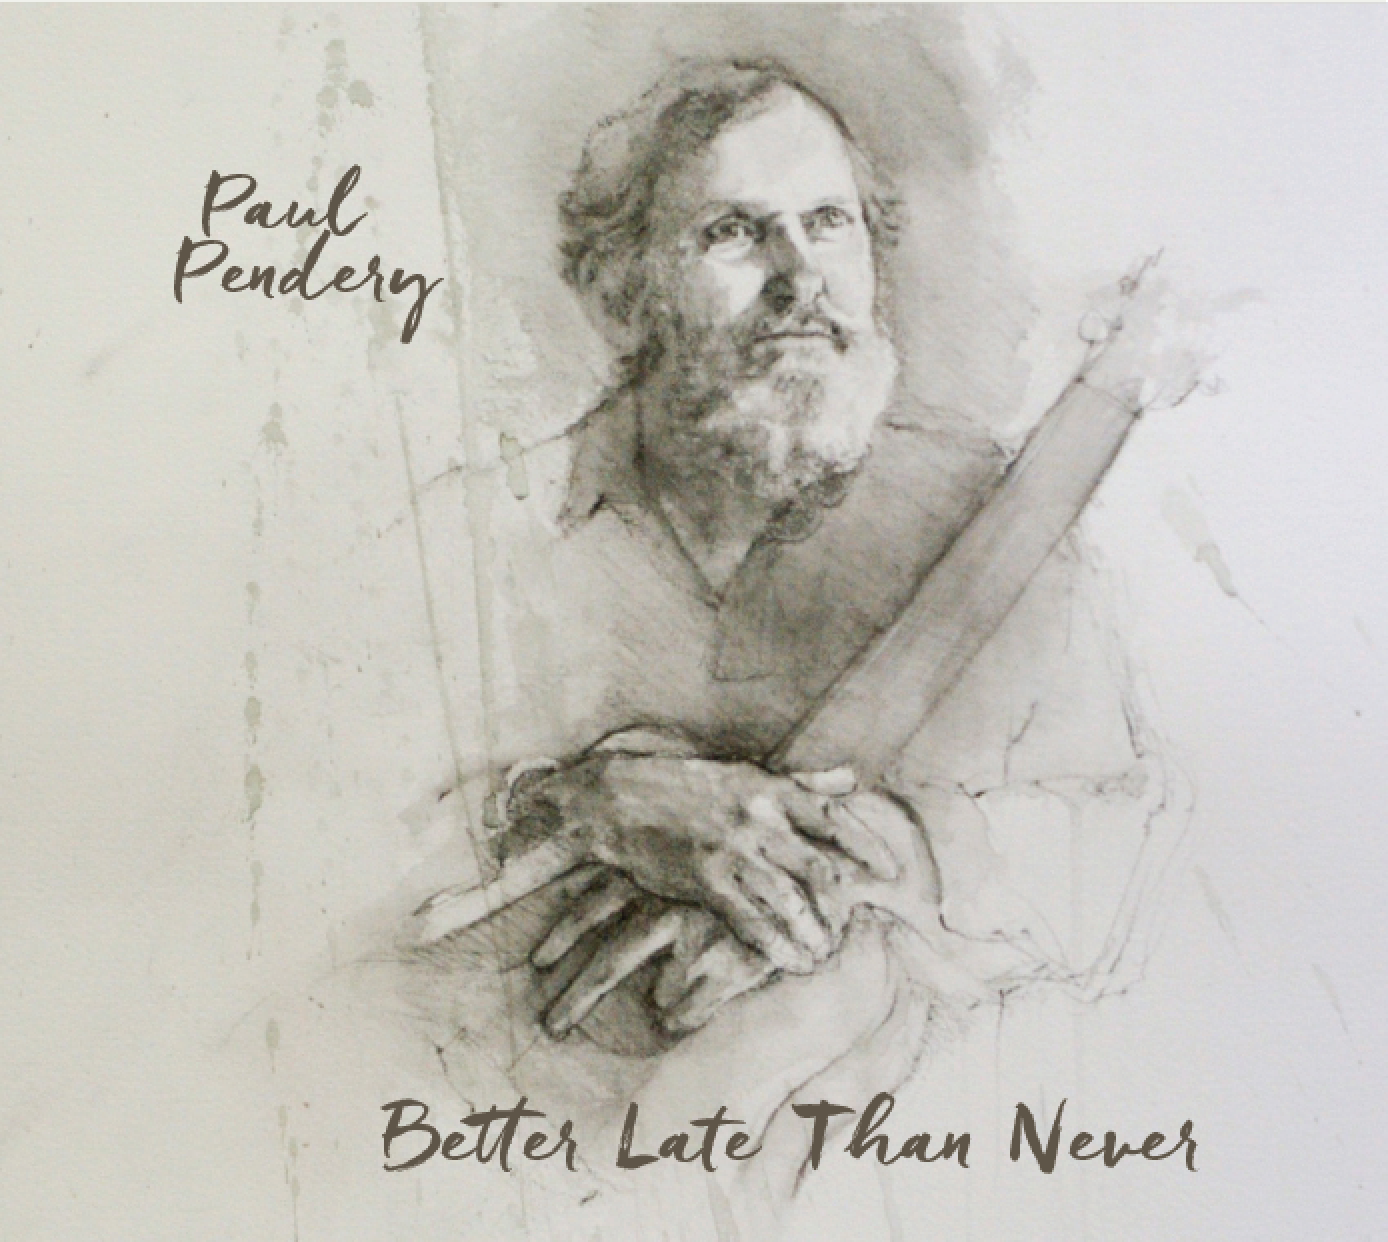 Better Late Than Never by Paul Pendery